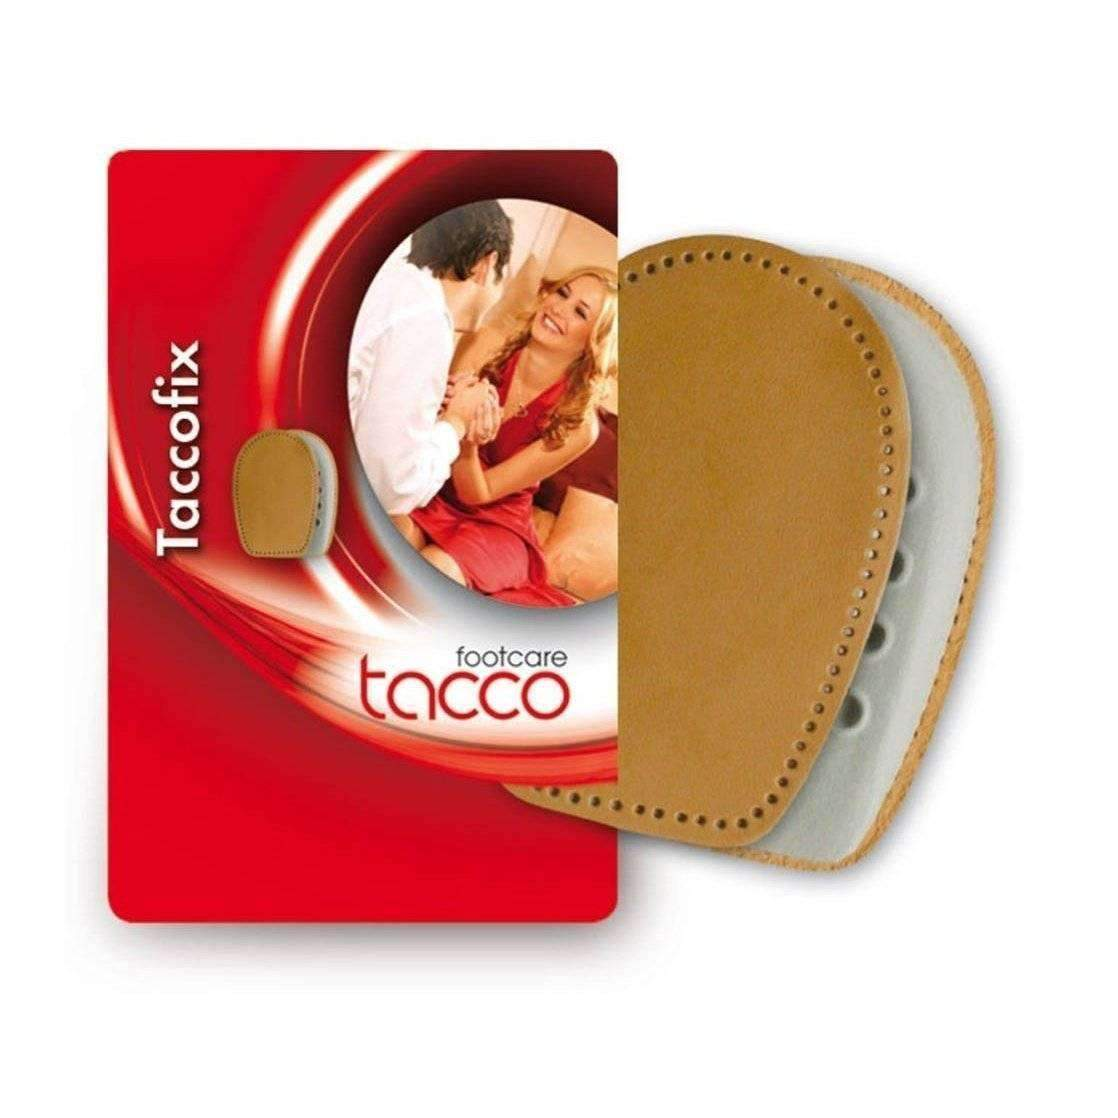 TACCO 626 Relax Orthotic Heel Support Shoe Cushions Leather Insoles Inserts